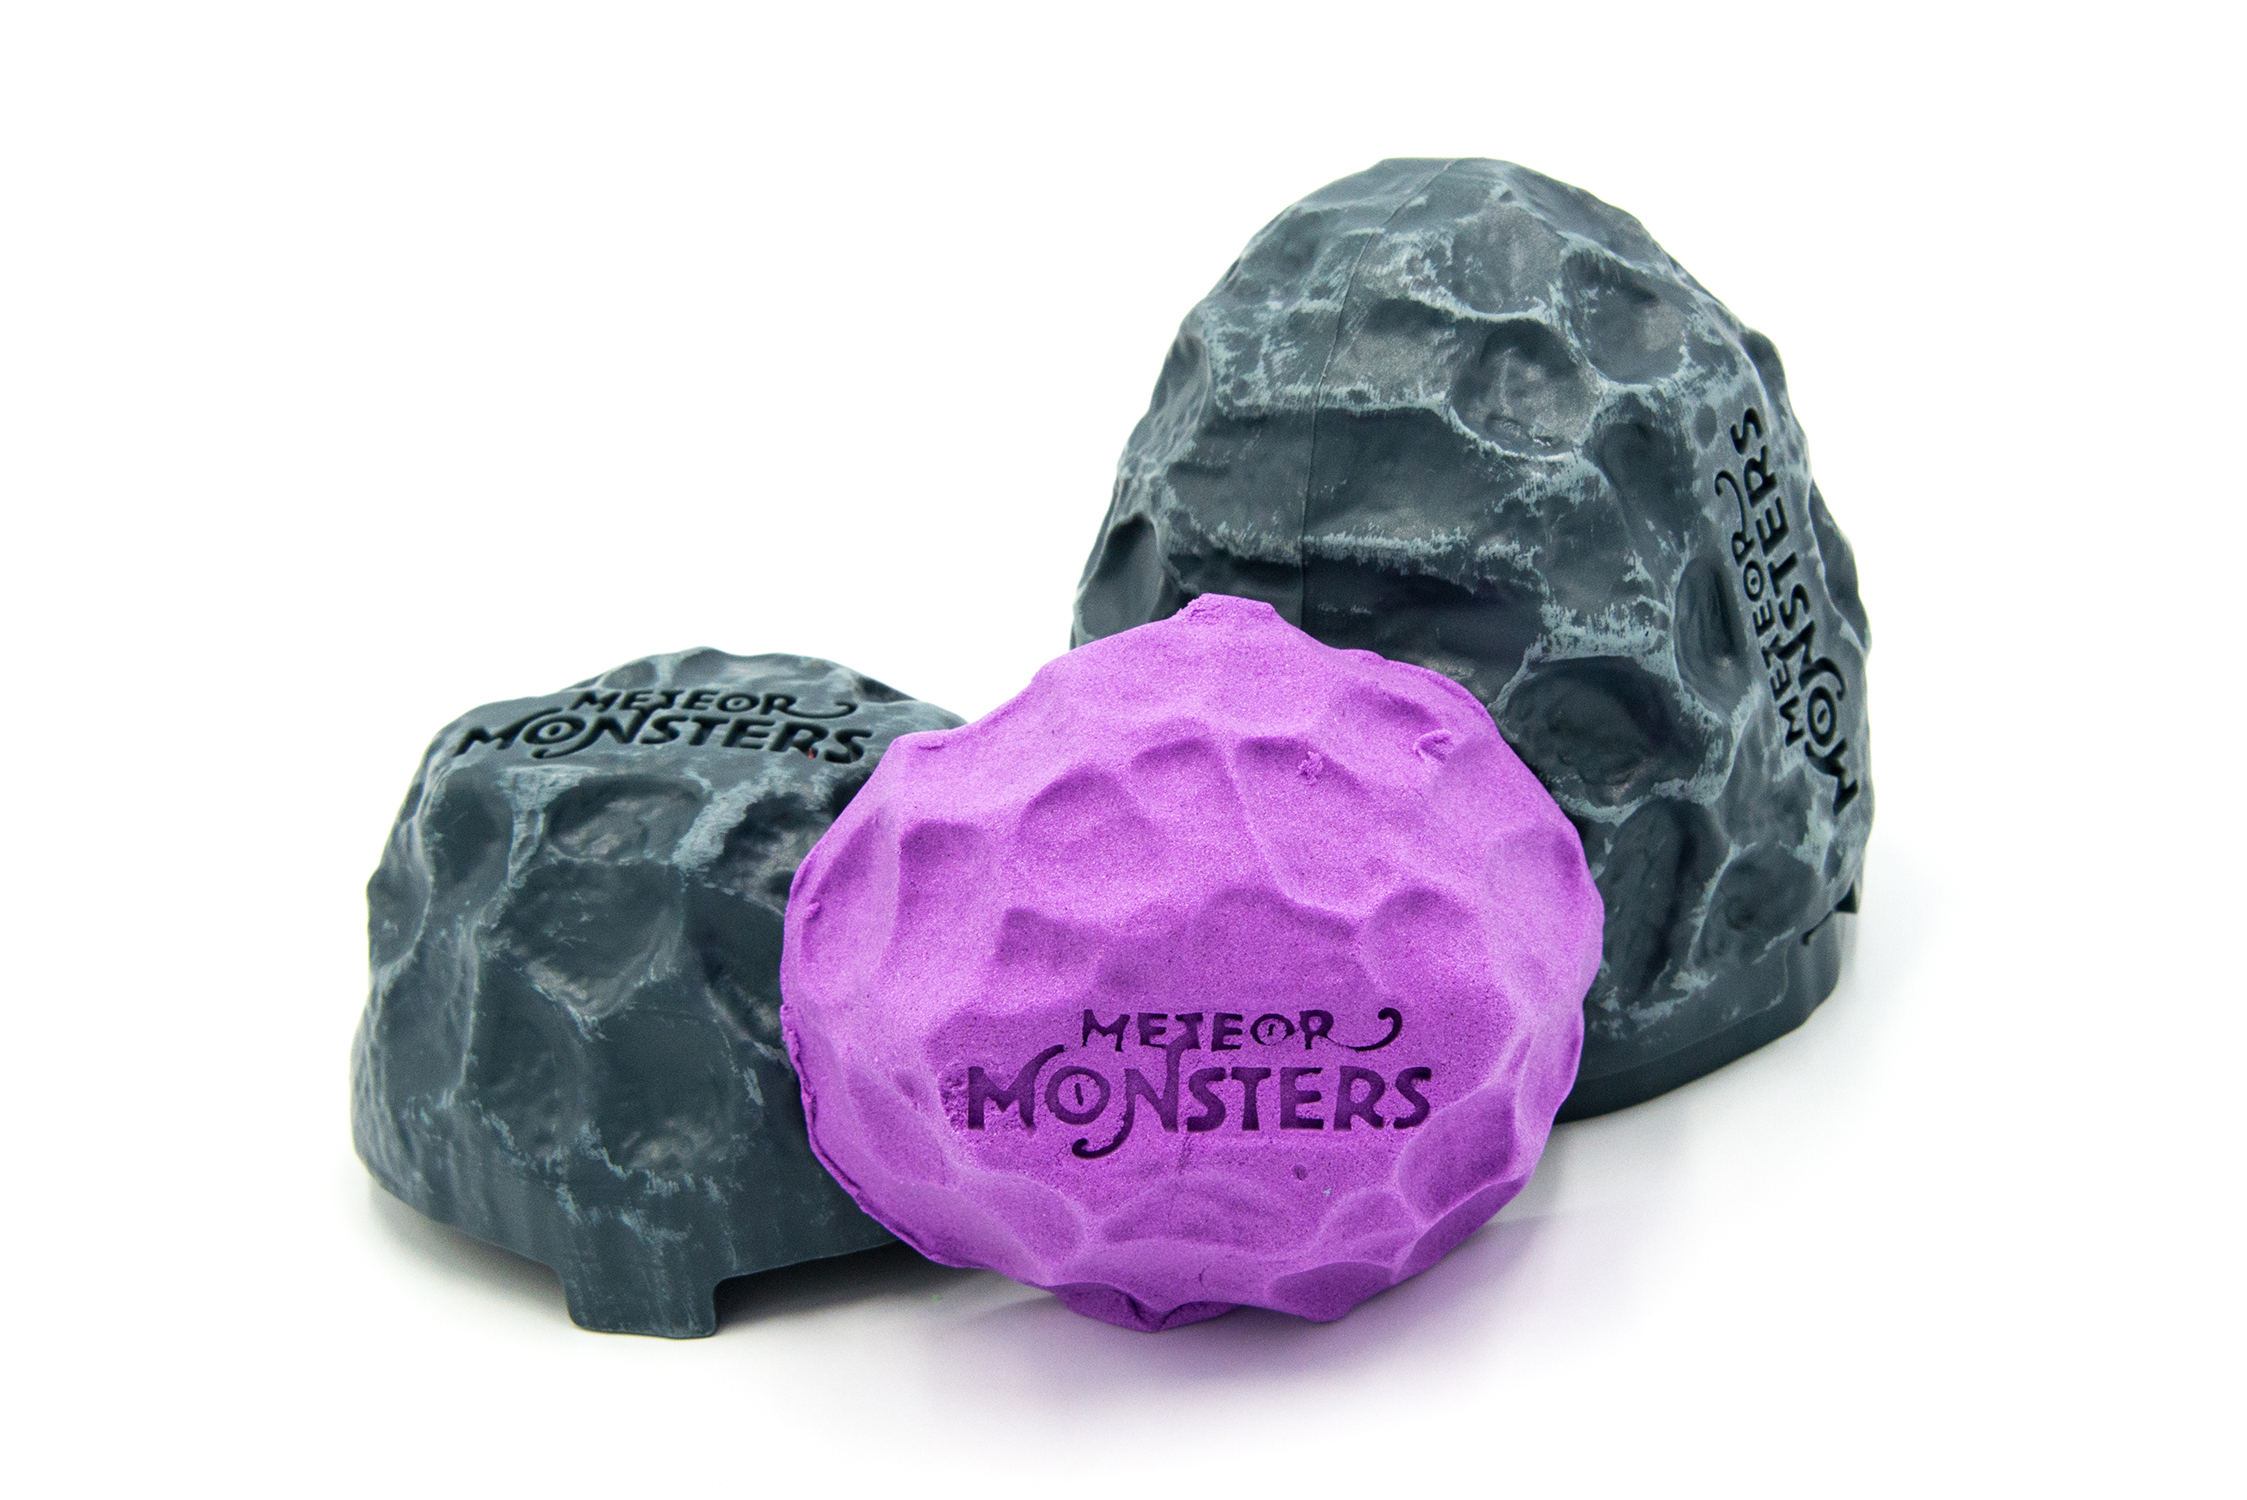 IMAGE 3 - Meteor Monsters - Meteor Shell with Mad Mattr - hi-res.jpg